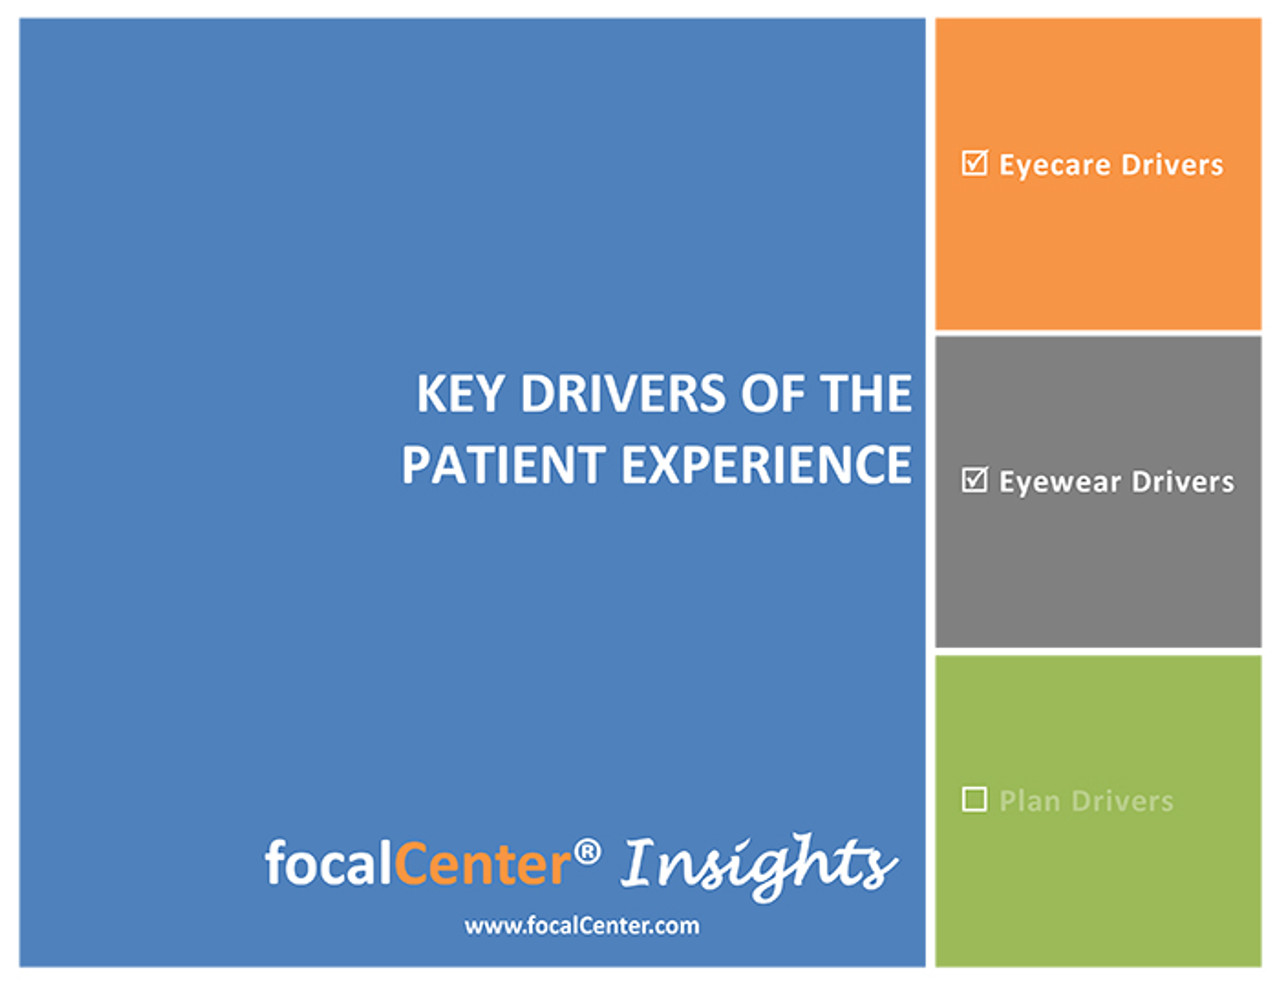 Key Drivers of the Patient Experience: -- Focus Group Perspectives on EYECARE & EYEWEAR